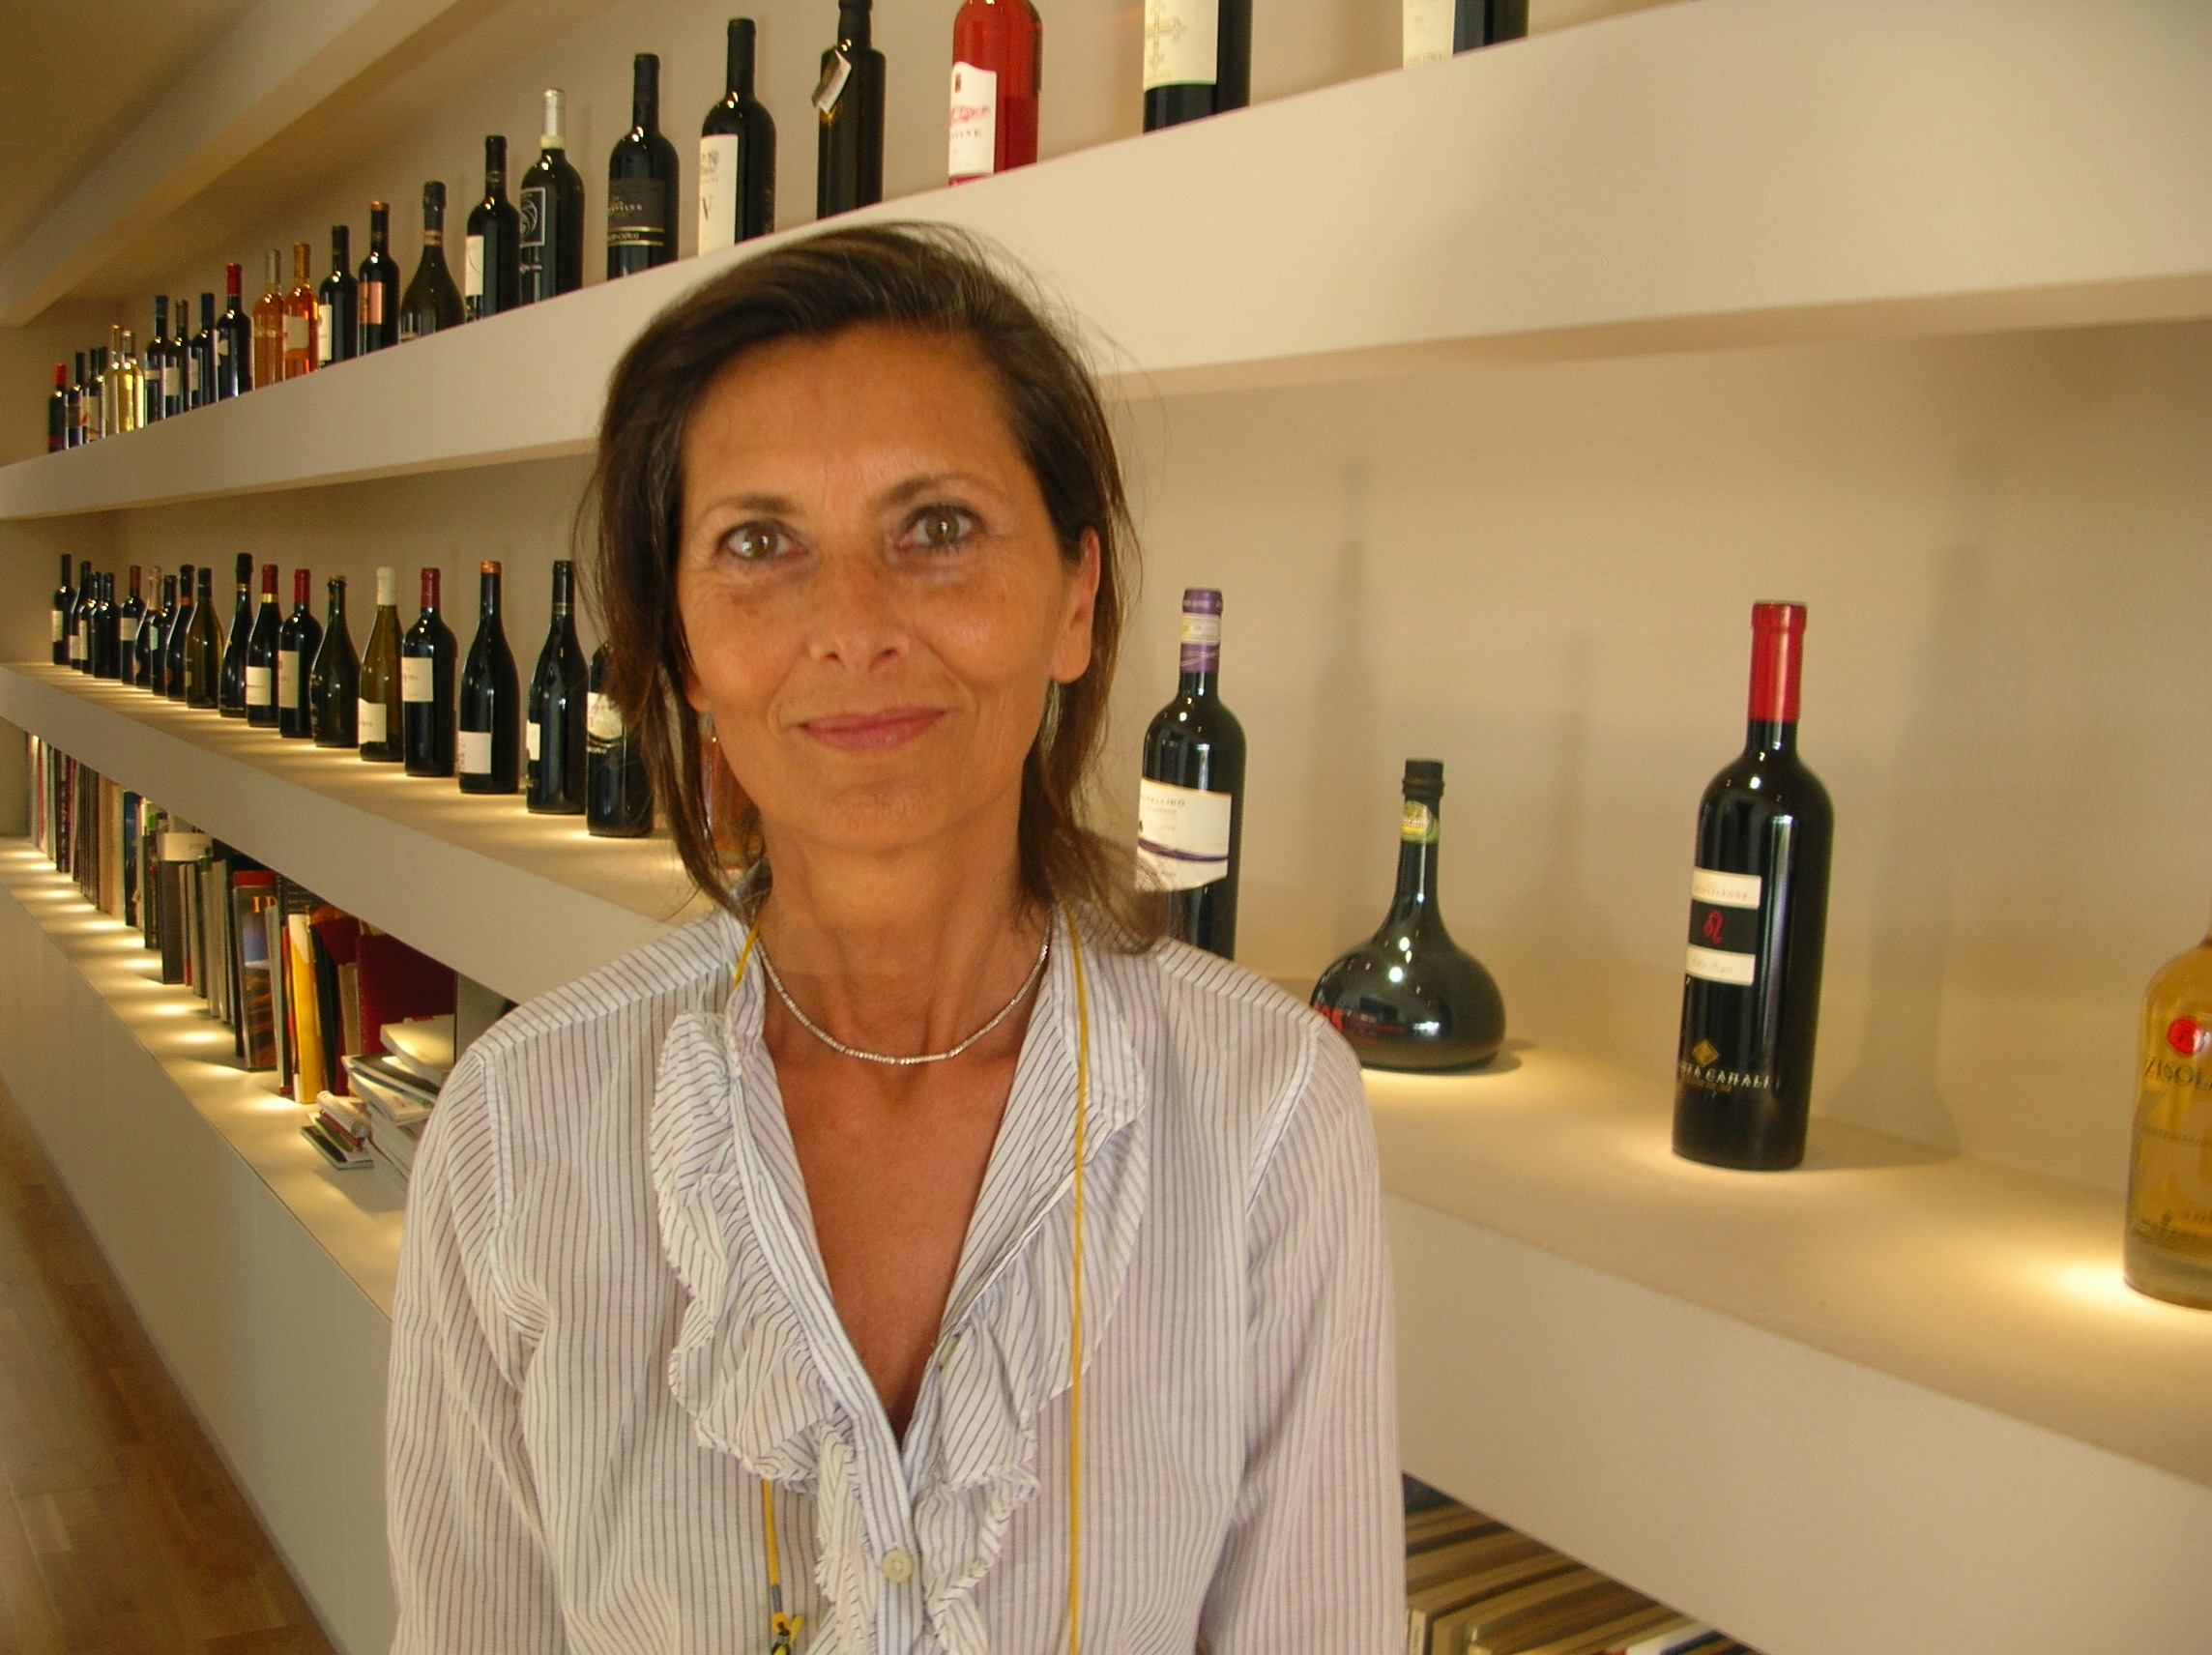 Wine for Fashion. Moda e vino a braccetto nell'atelier di Simonetta Doni